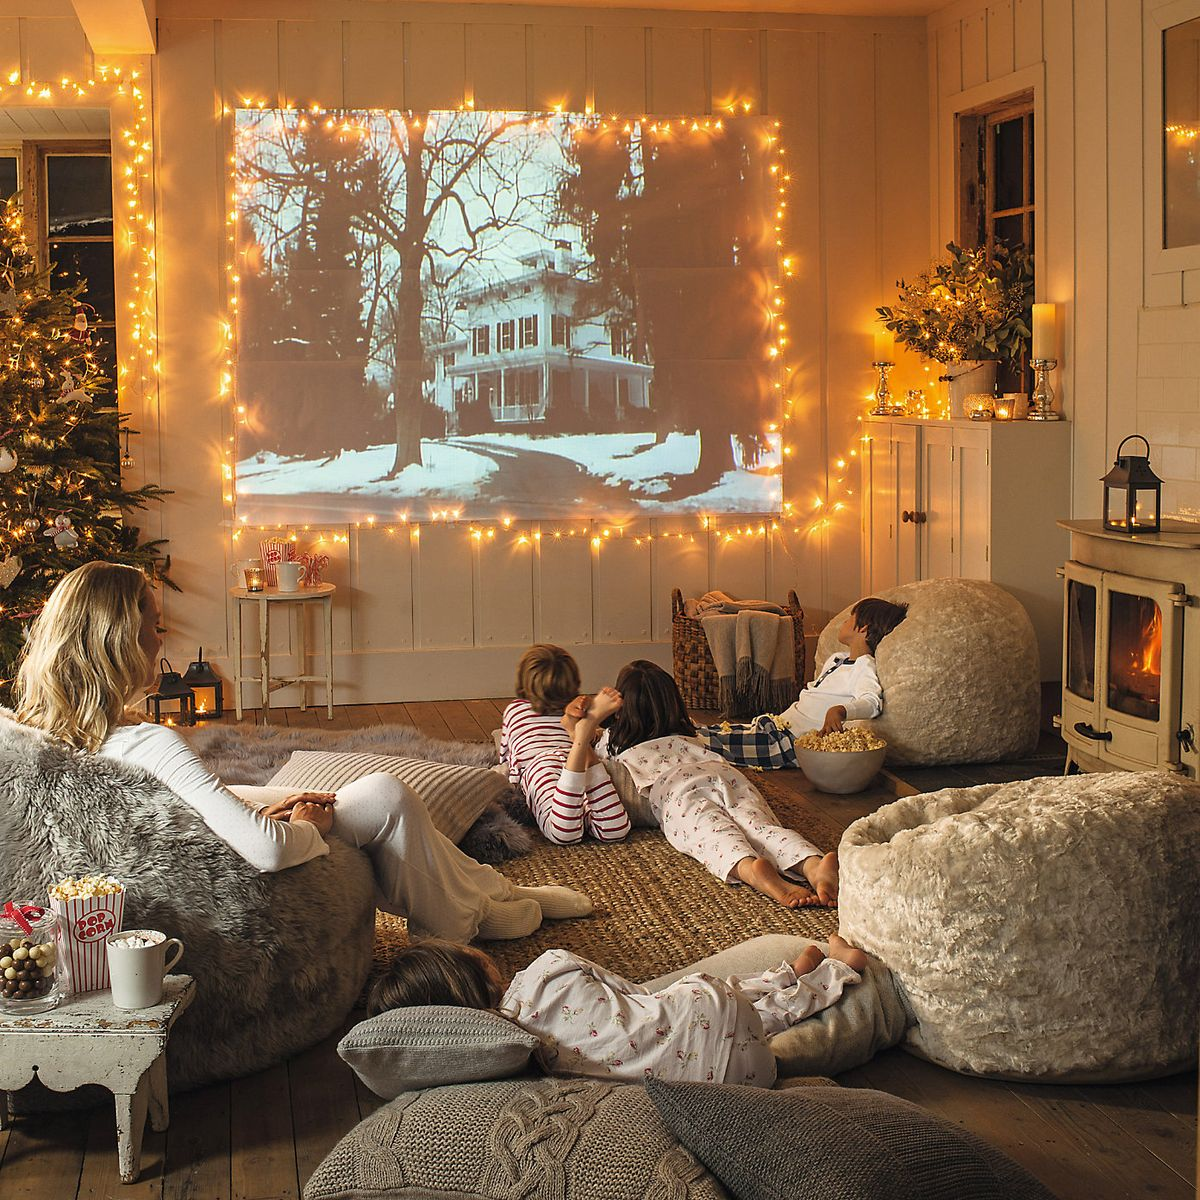 7 Movies For Your Next Lazy Winter Evening